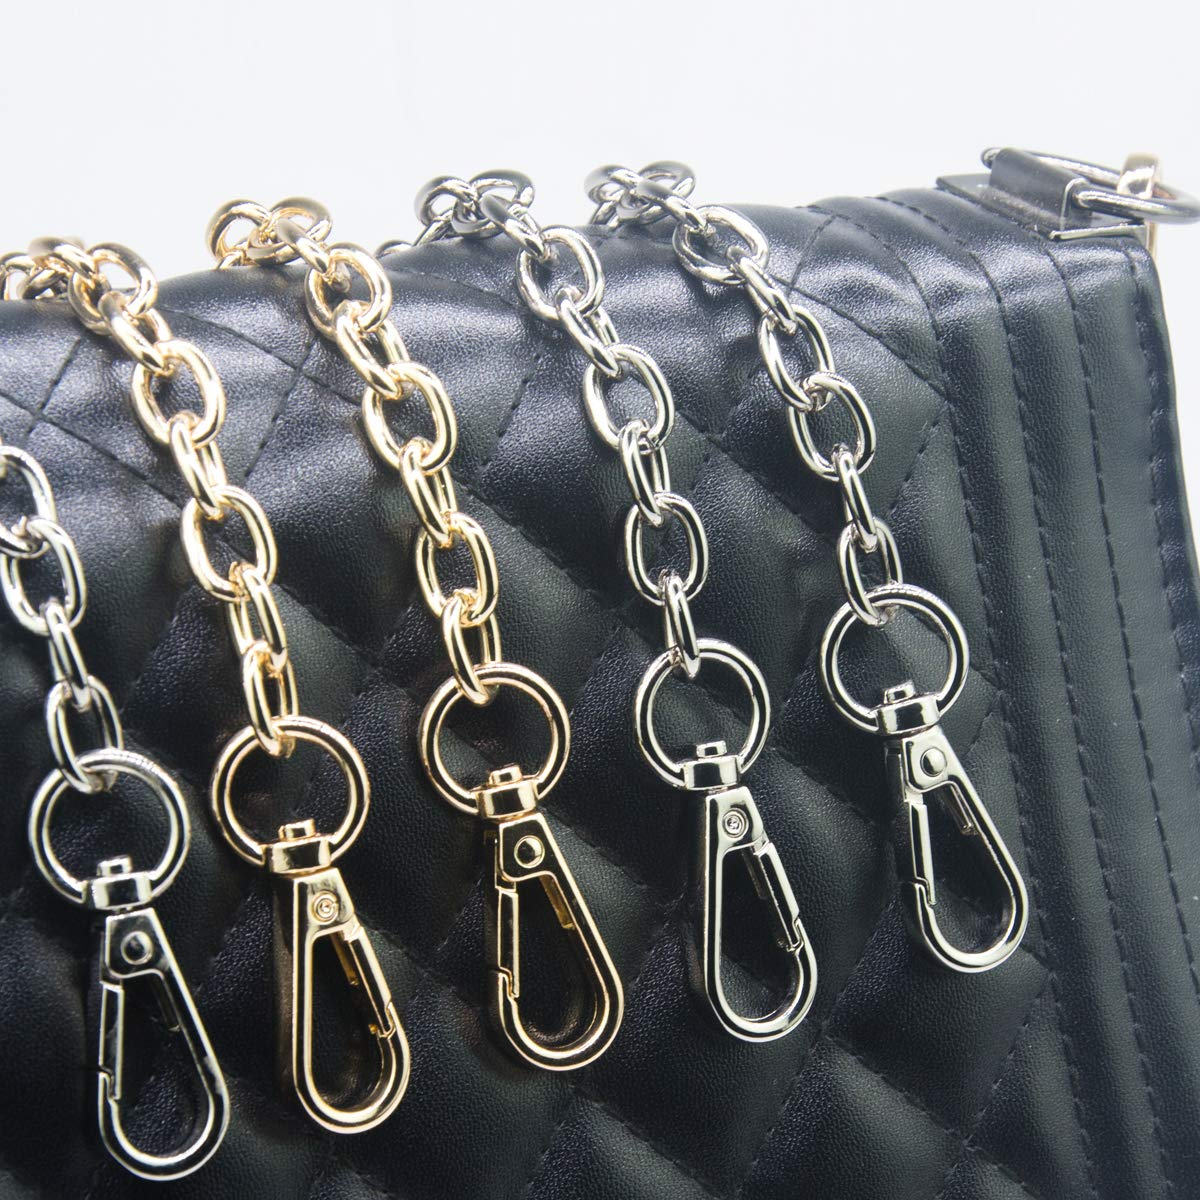 Chains Accessories Clutches Handles 2-Pack 23.6 Long Replacement Straps for Purses or Handbag Silver SUPXINJIA Handle Chain Strap